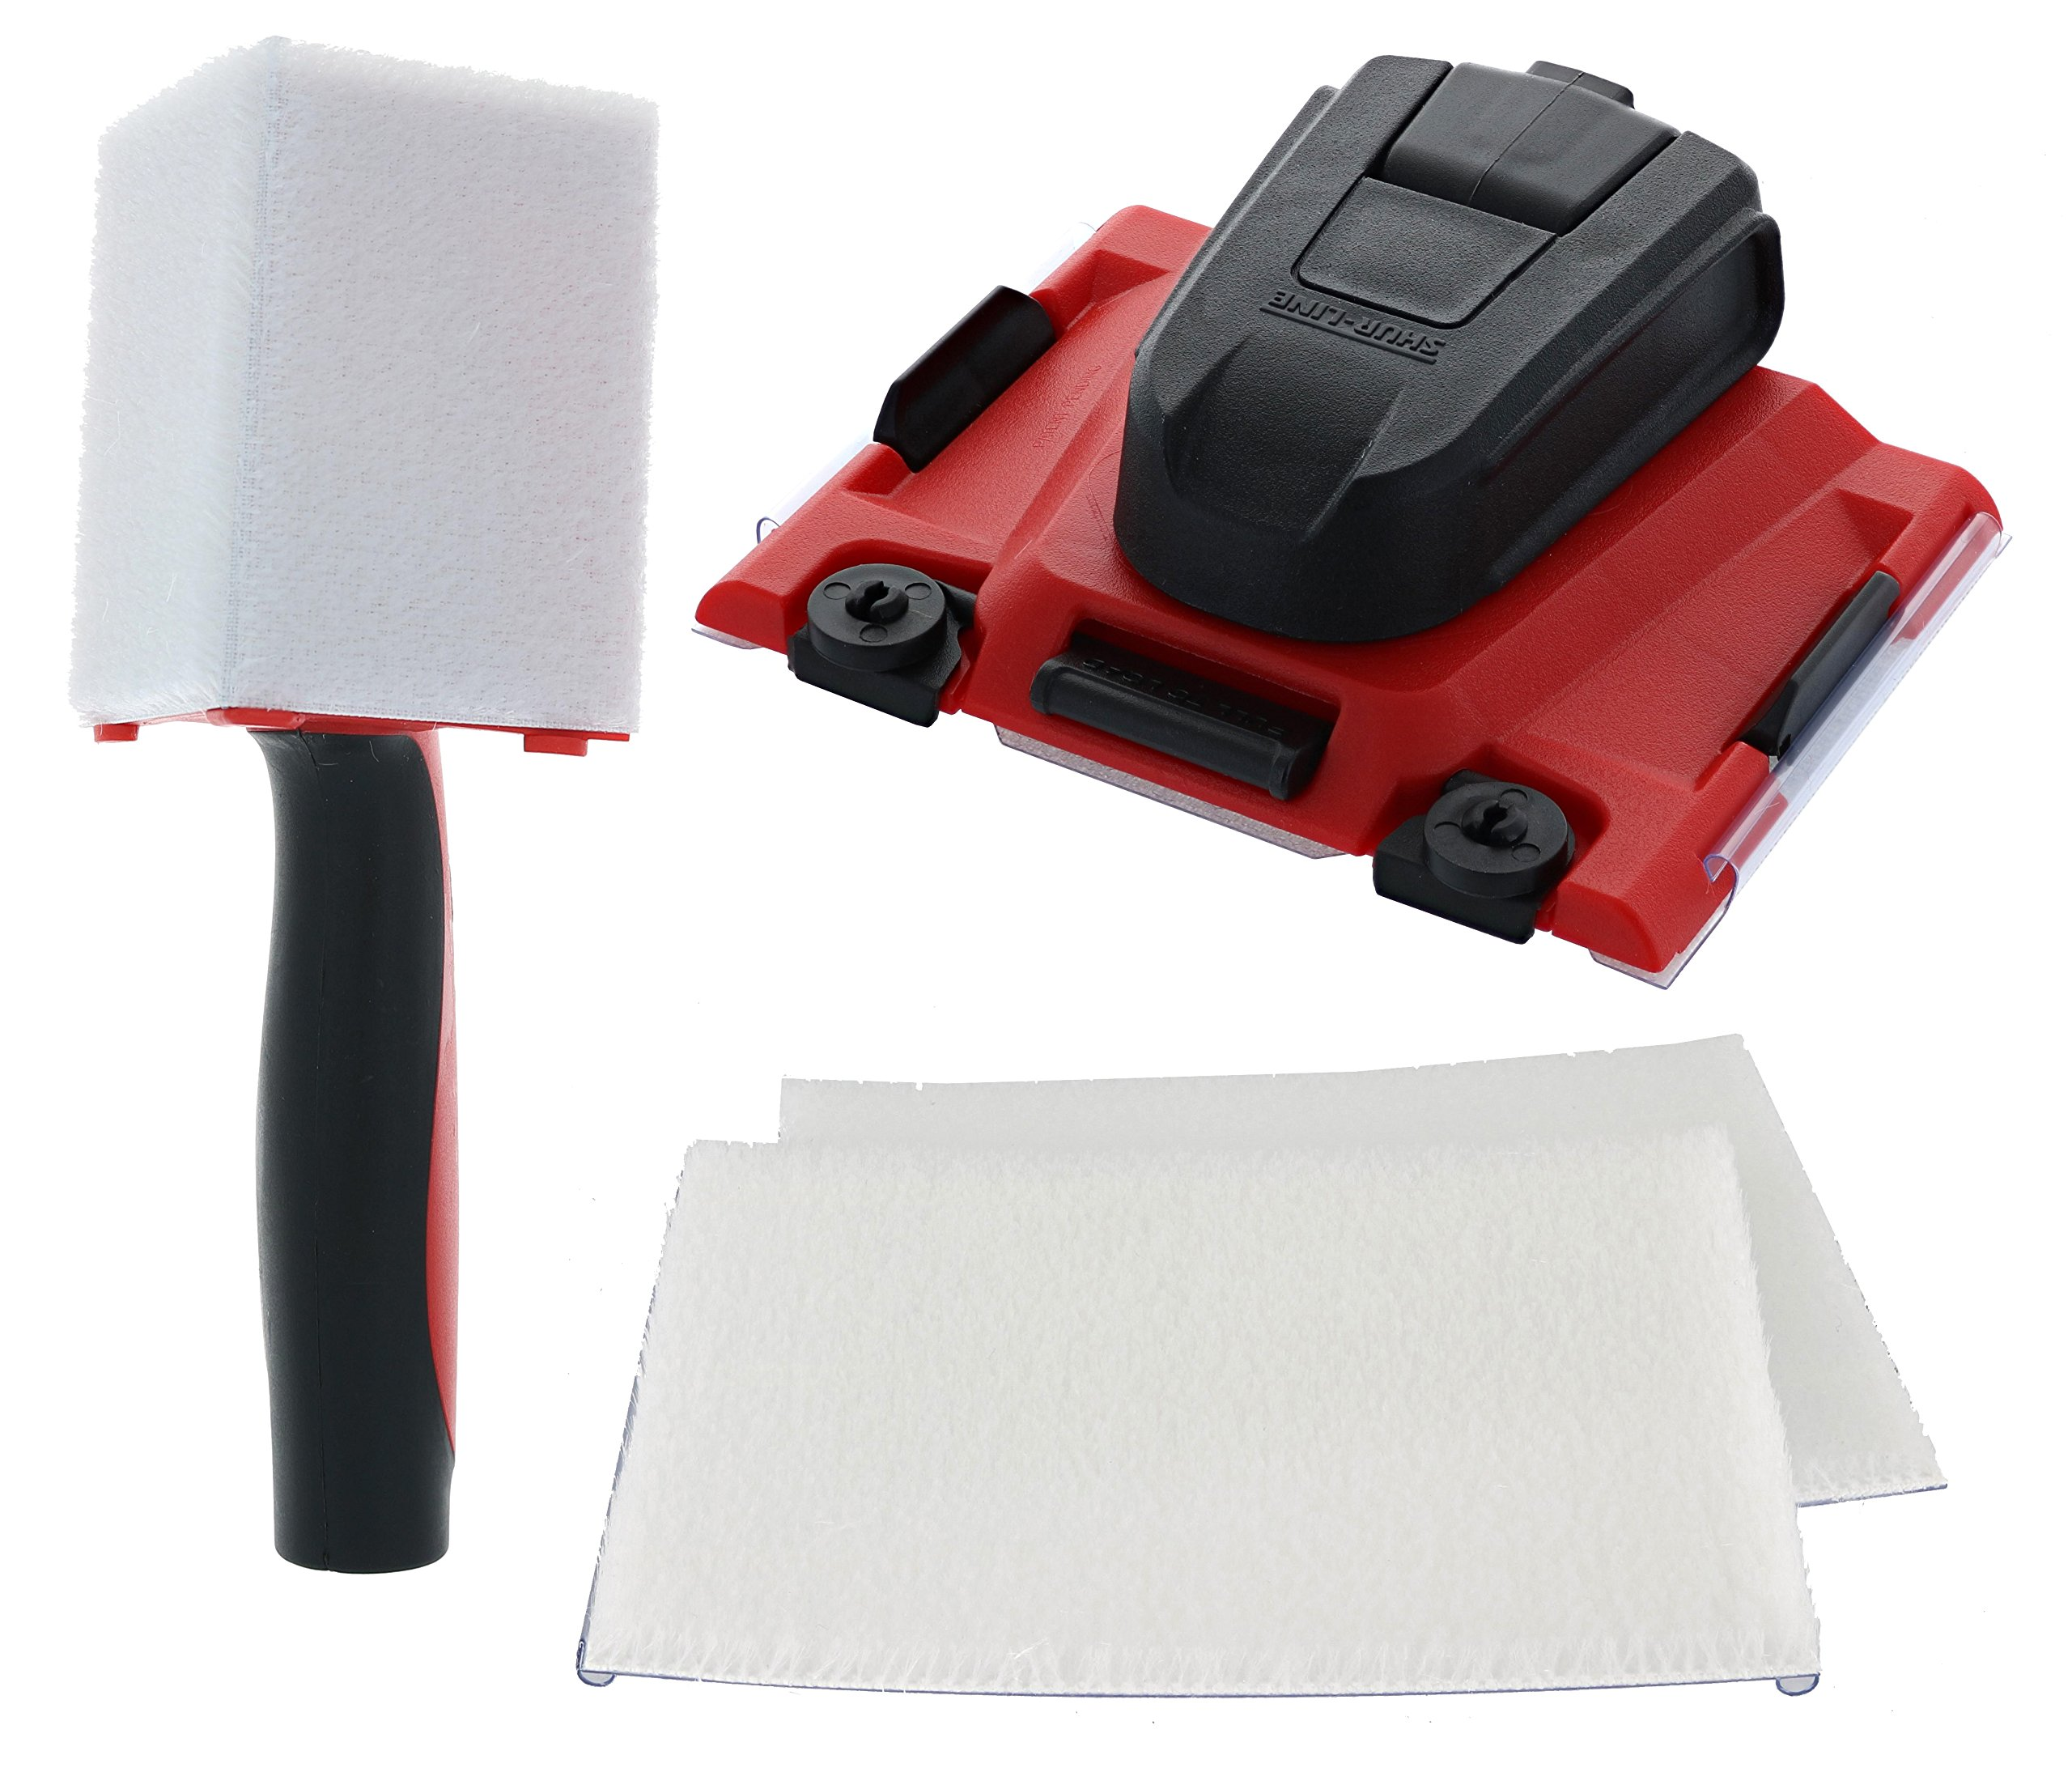 Shur-Line Painter Triple Painter's Pack Including: 1 x Shur-Line 2006561 Paint Edger Pro, 1 x Shur-Line 1575H Corner Painter, and 1 x Replacement Pad Pack by Shur-Line